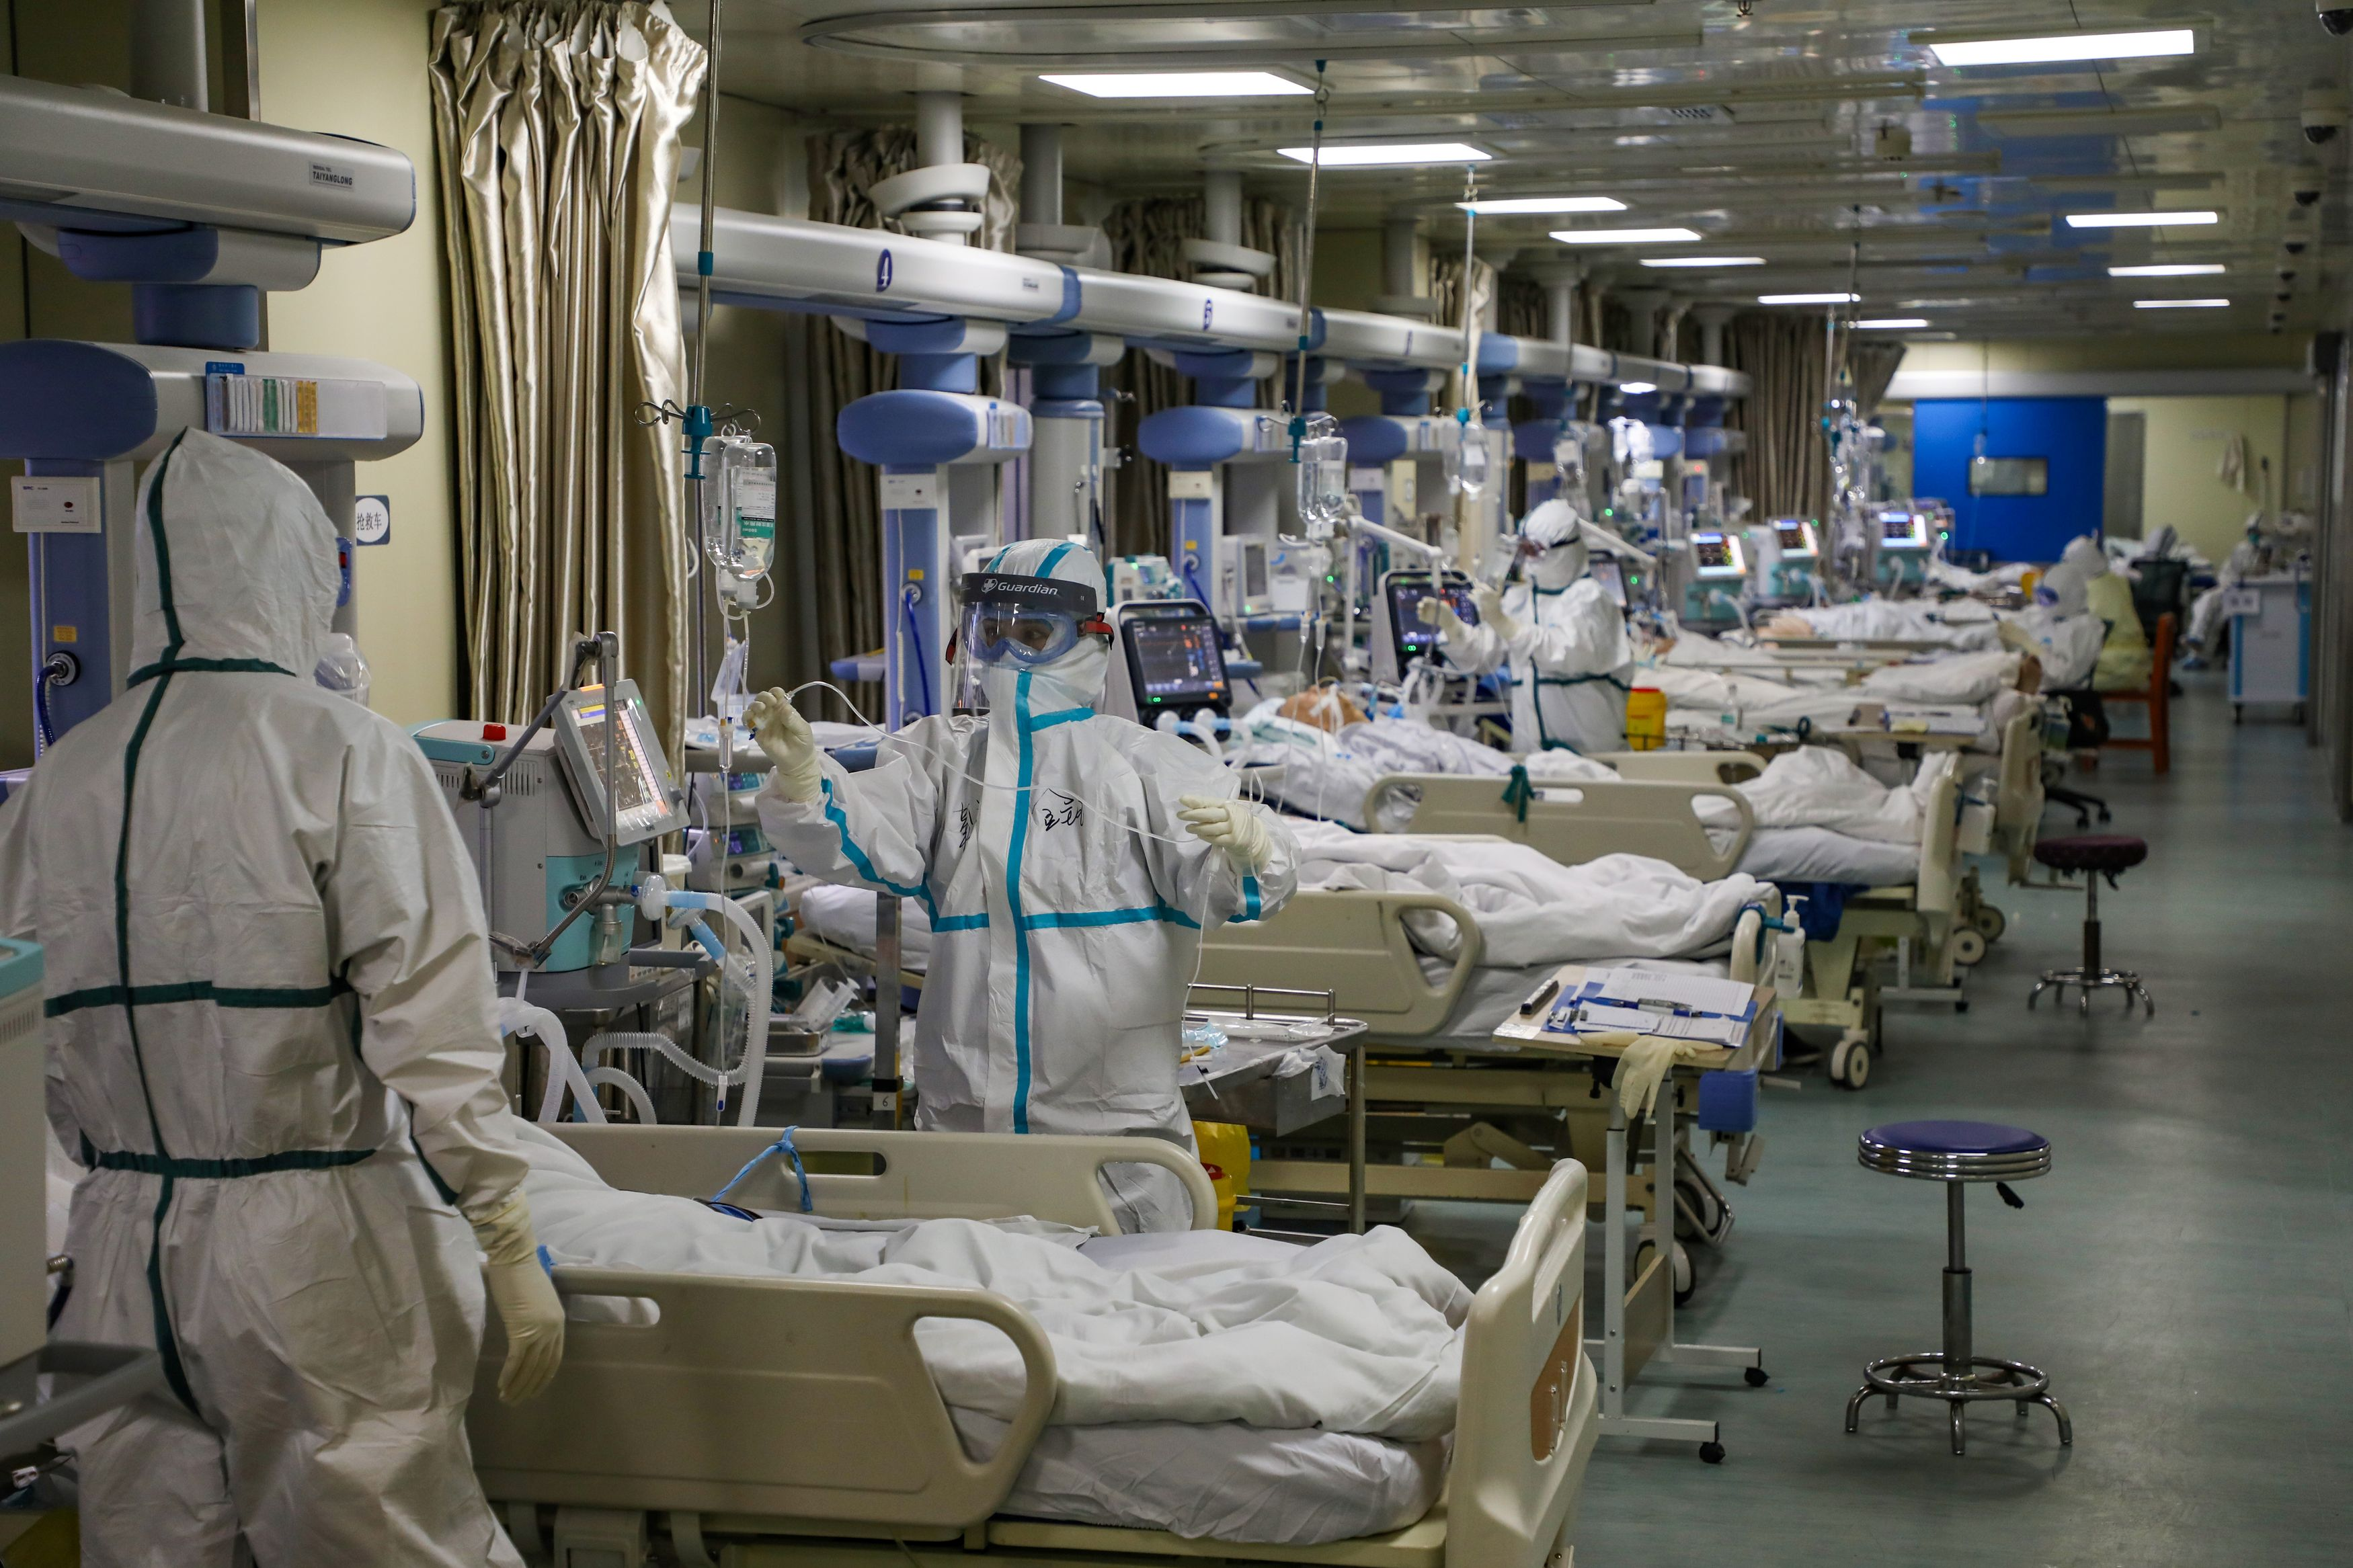 ICU patients with coronavirus and pneumonia treated in Wuhan ...